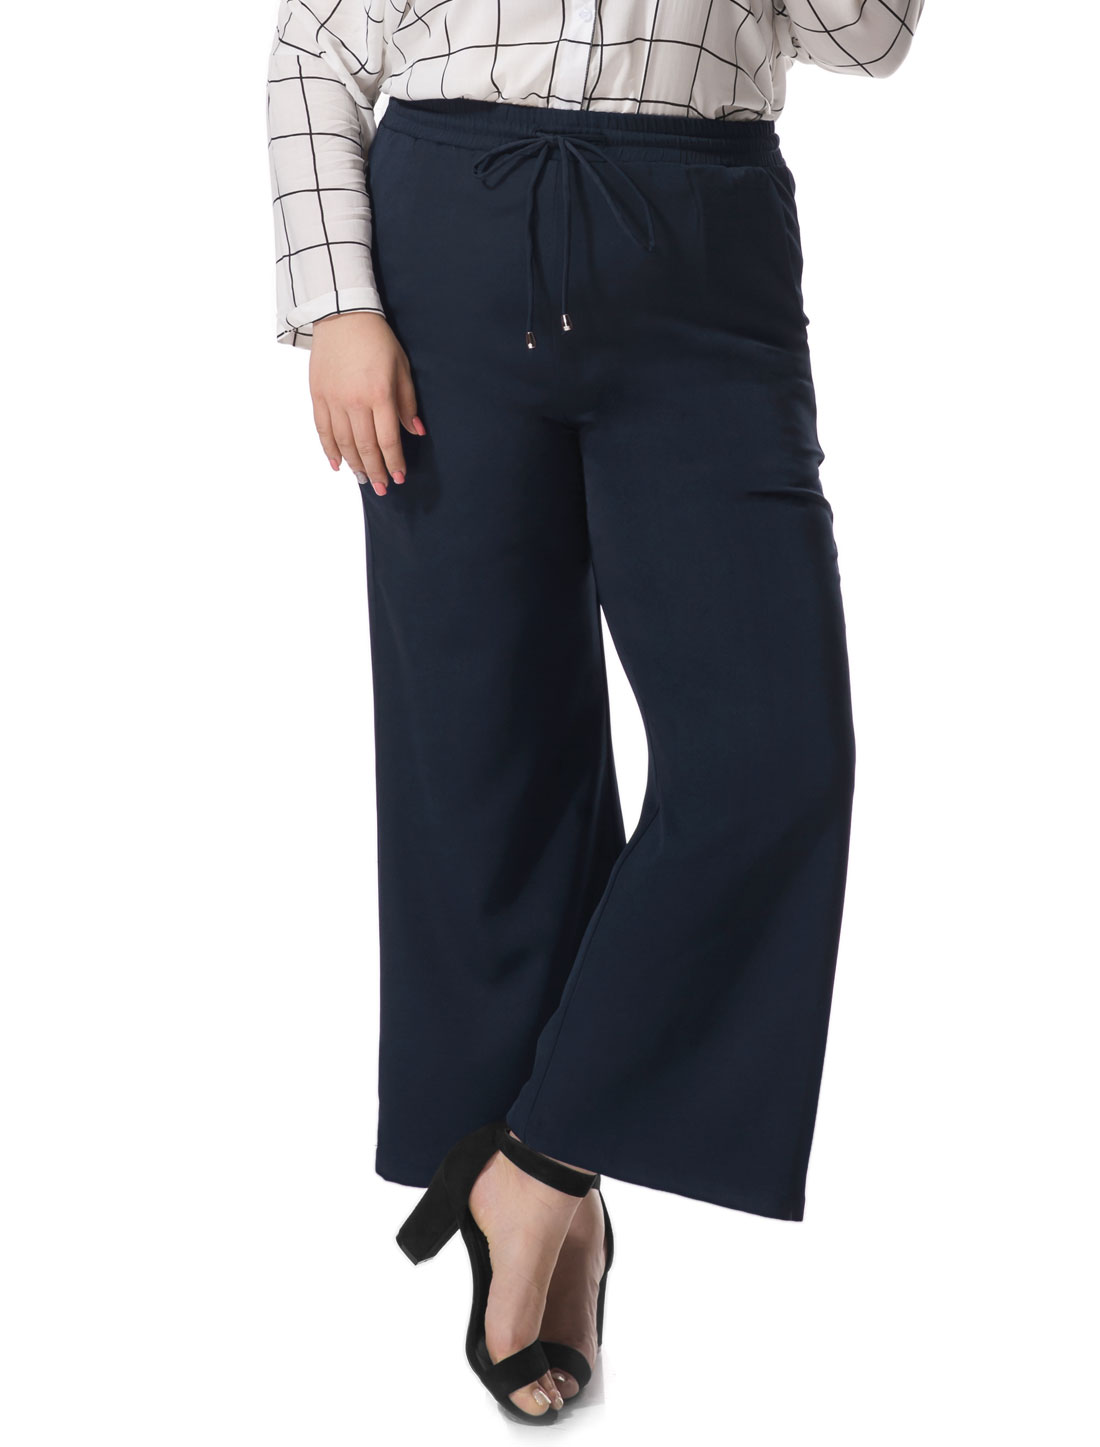 Women Plus Size Wide Leg Elastic Drawstring Pants Blue 3X